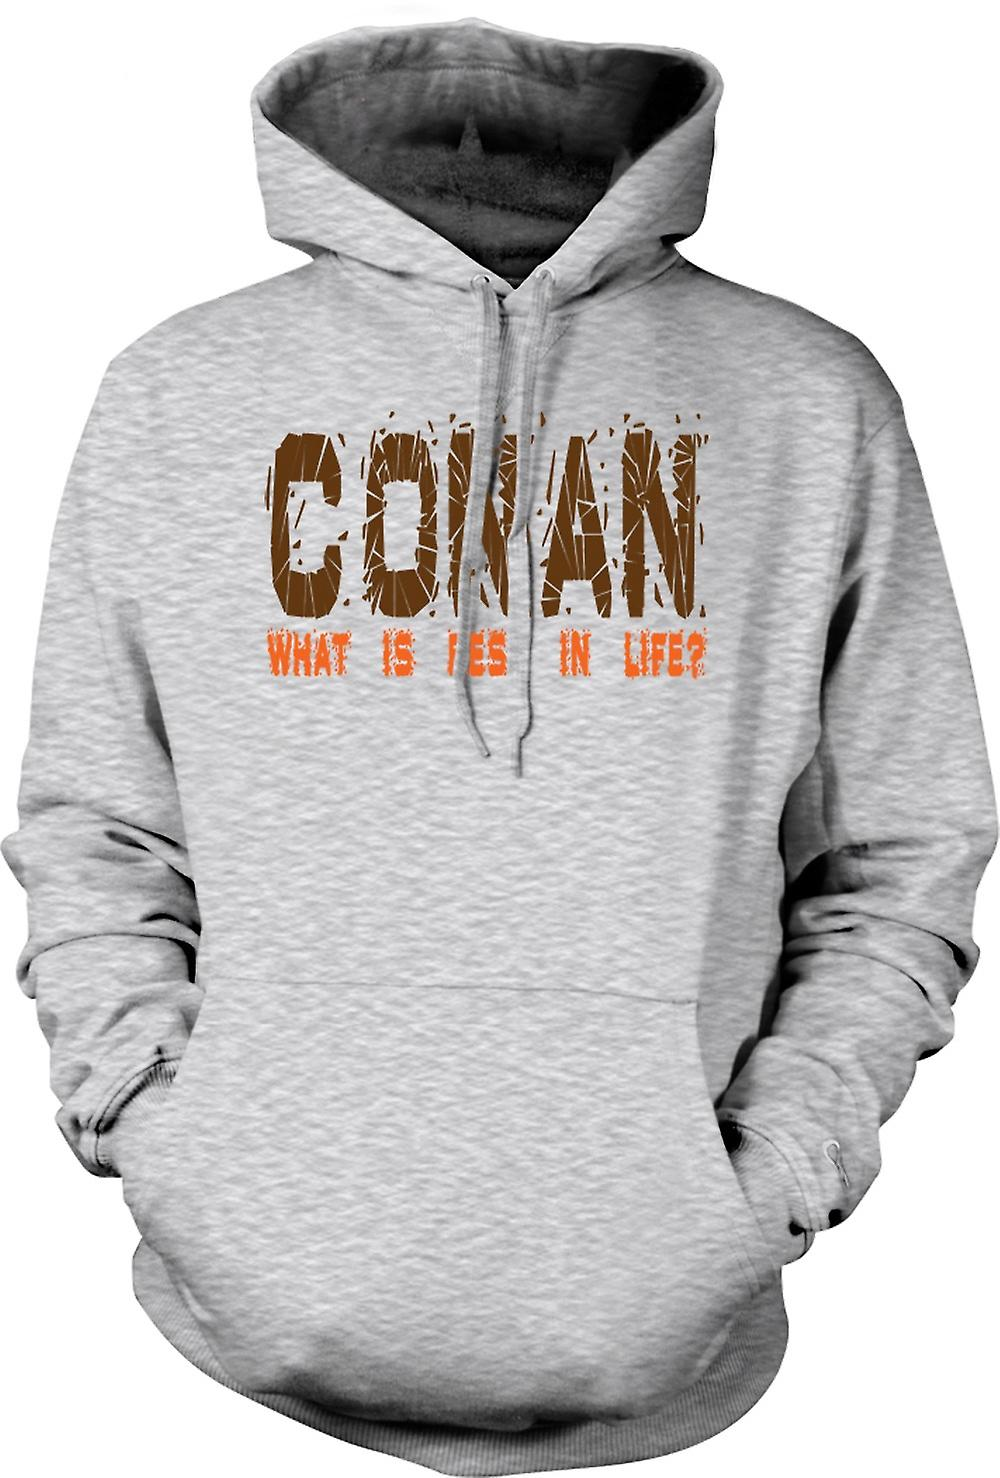 Mens Hoodie - Conan, What Is Best In Life? - Funny Quote